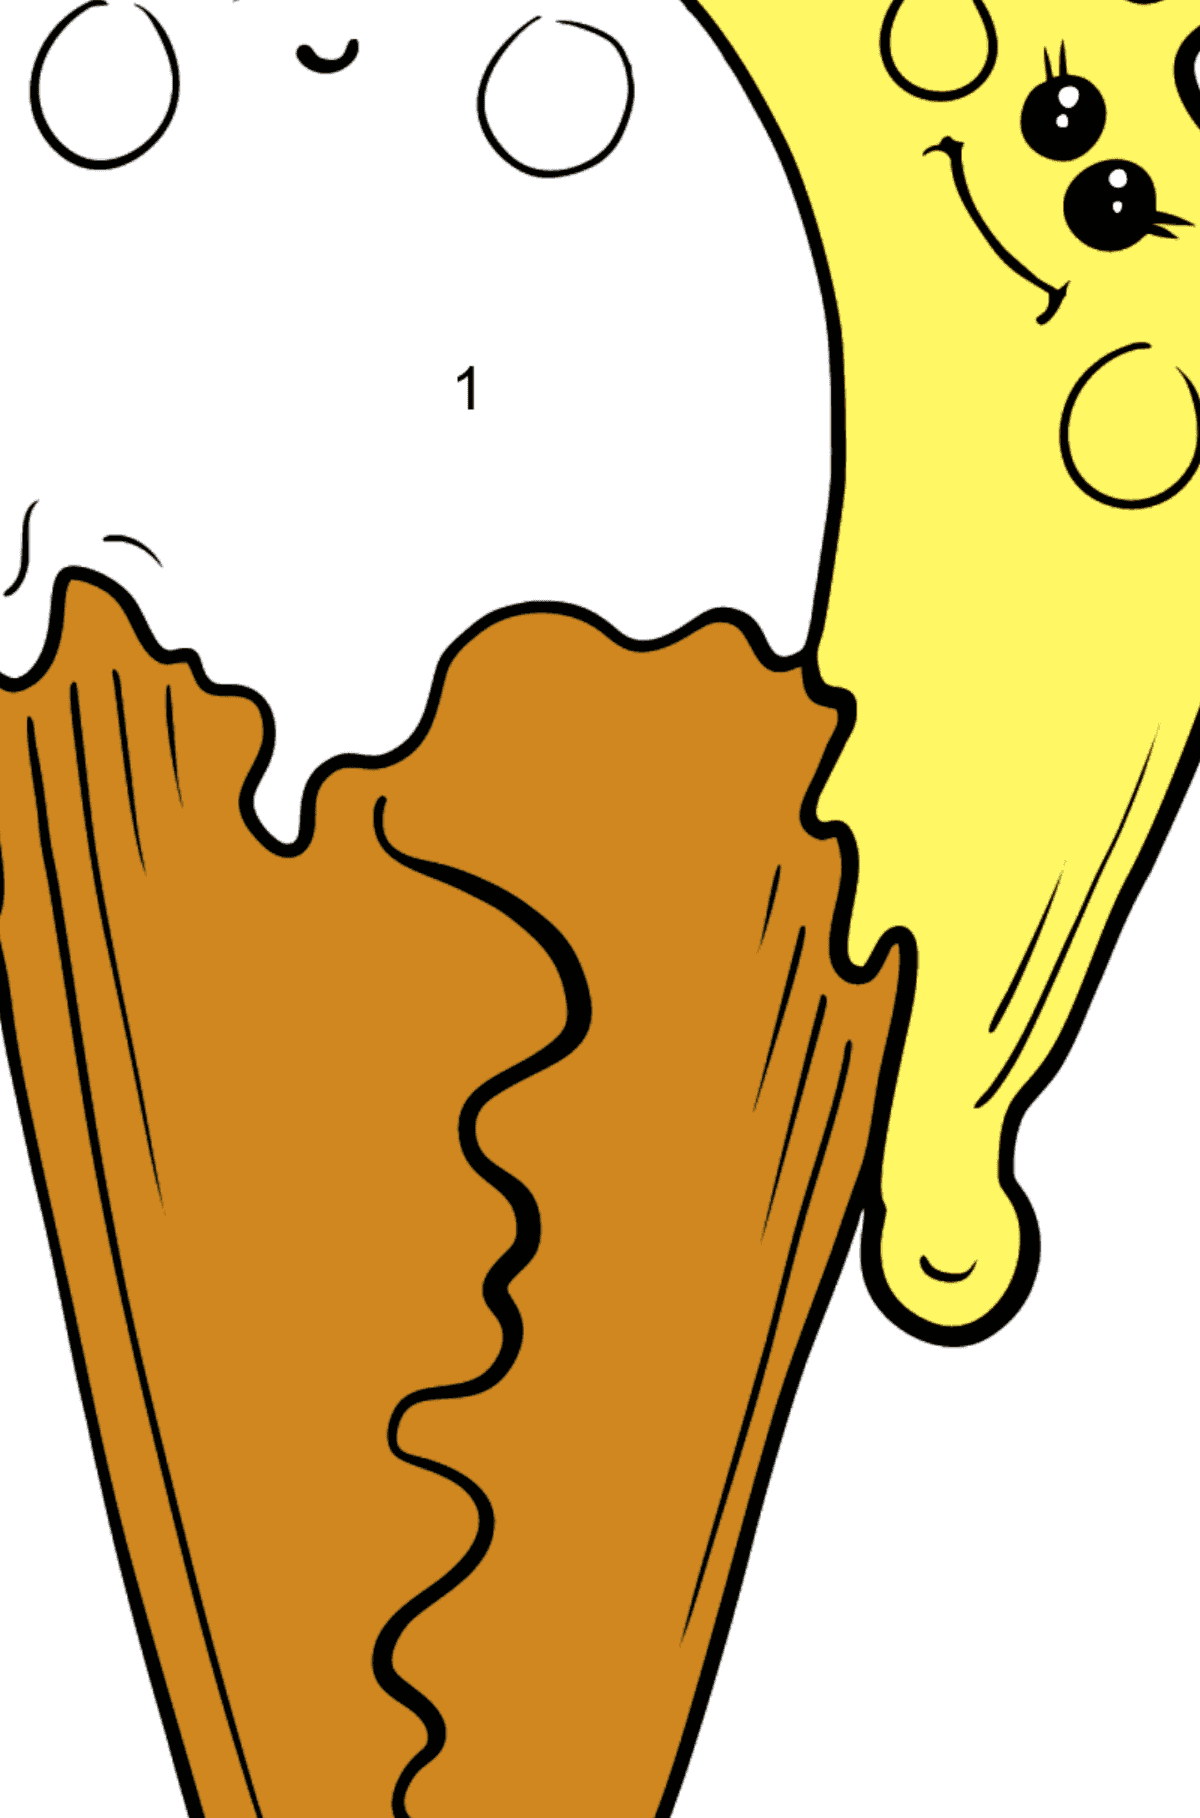 Coloring page - Kawaii Ice Cream (Banana and Strawberry) - Coloring by Numbers for Kids